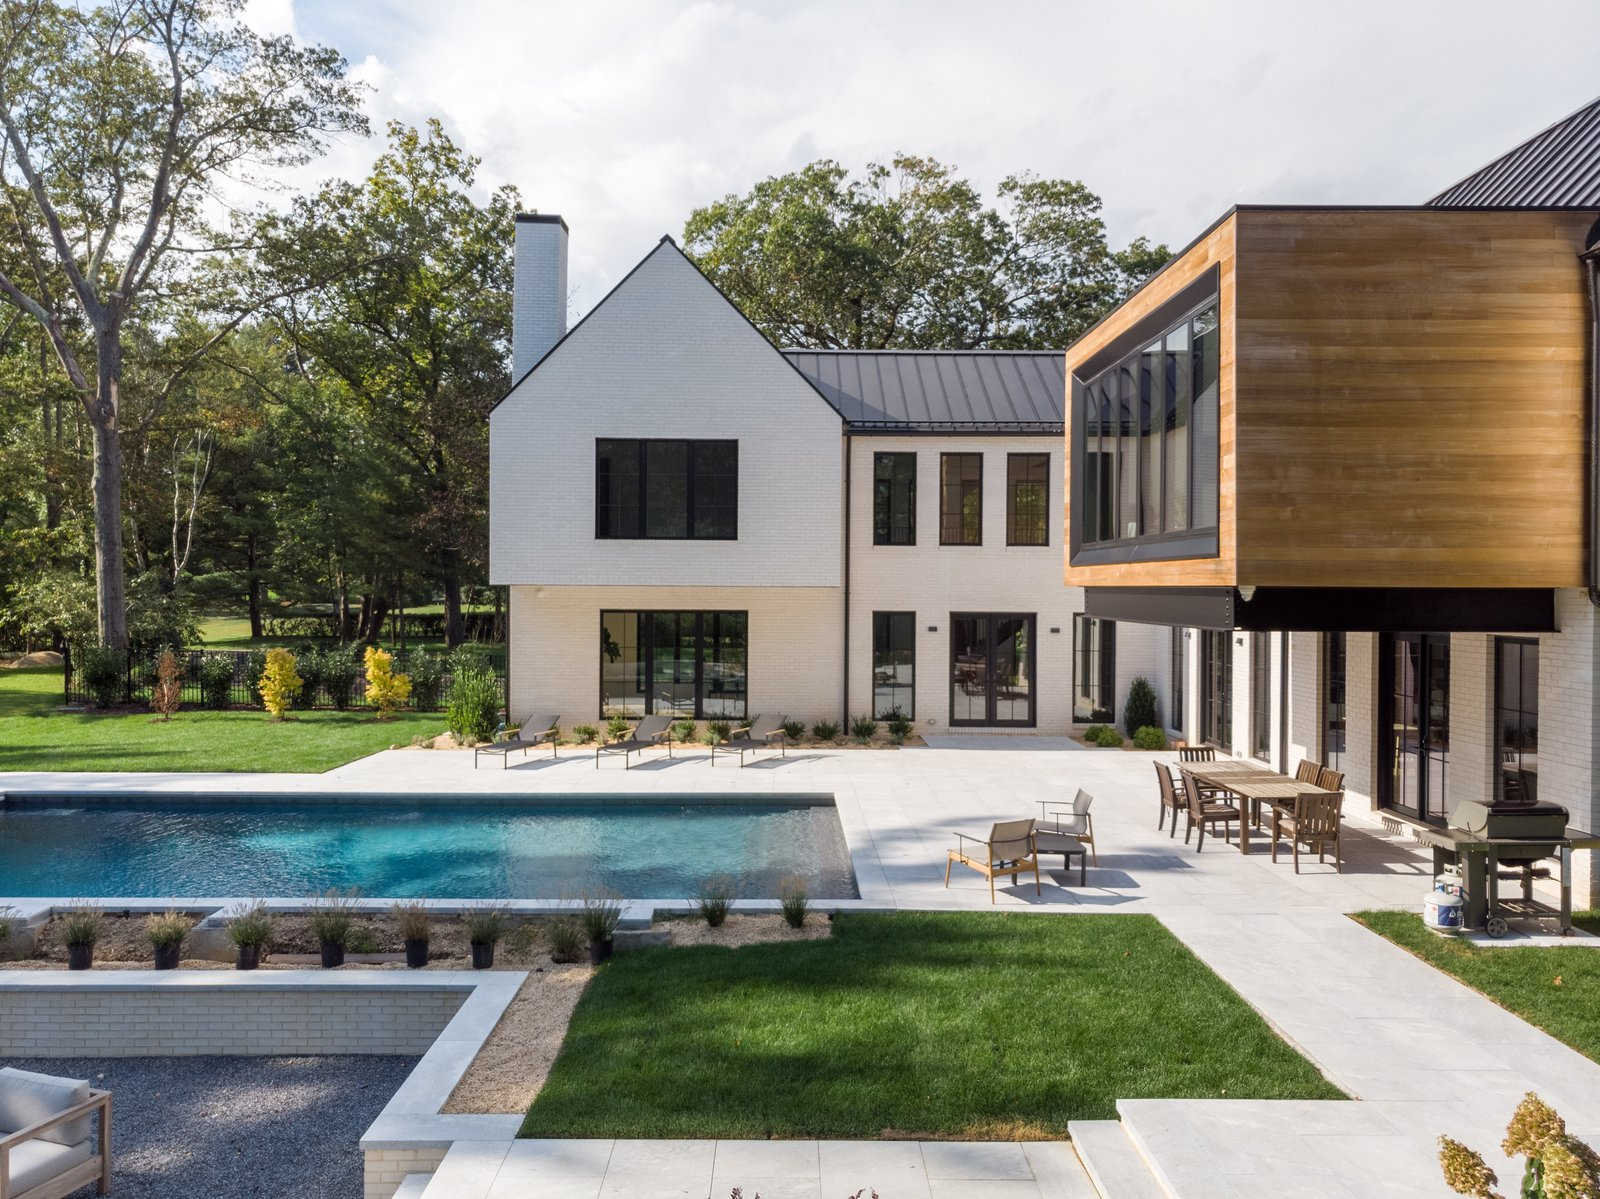 Outdoor, Concrete Pools, Tubs, Shower, Grass, Hardscapes, Back Yard, Landscape Lighting, Shrubs, Trees, Large Patio, Porch, Deck, and Large Pools, Tubs, Shower  Photo 1 of 11 in This Home's Unique Shape Is Designed to Capture Sunlight